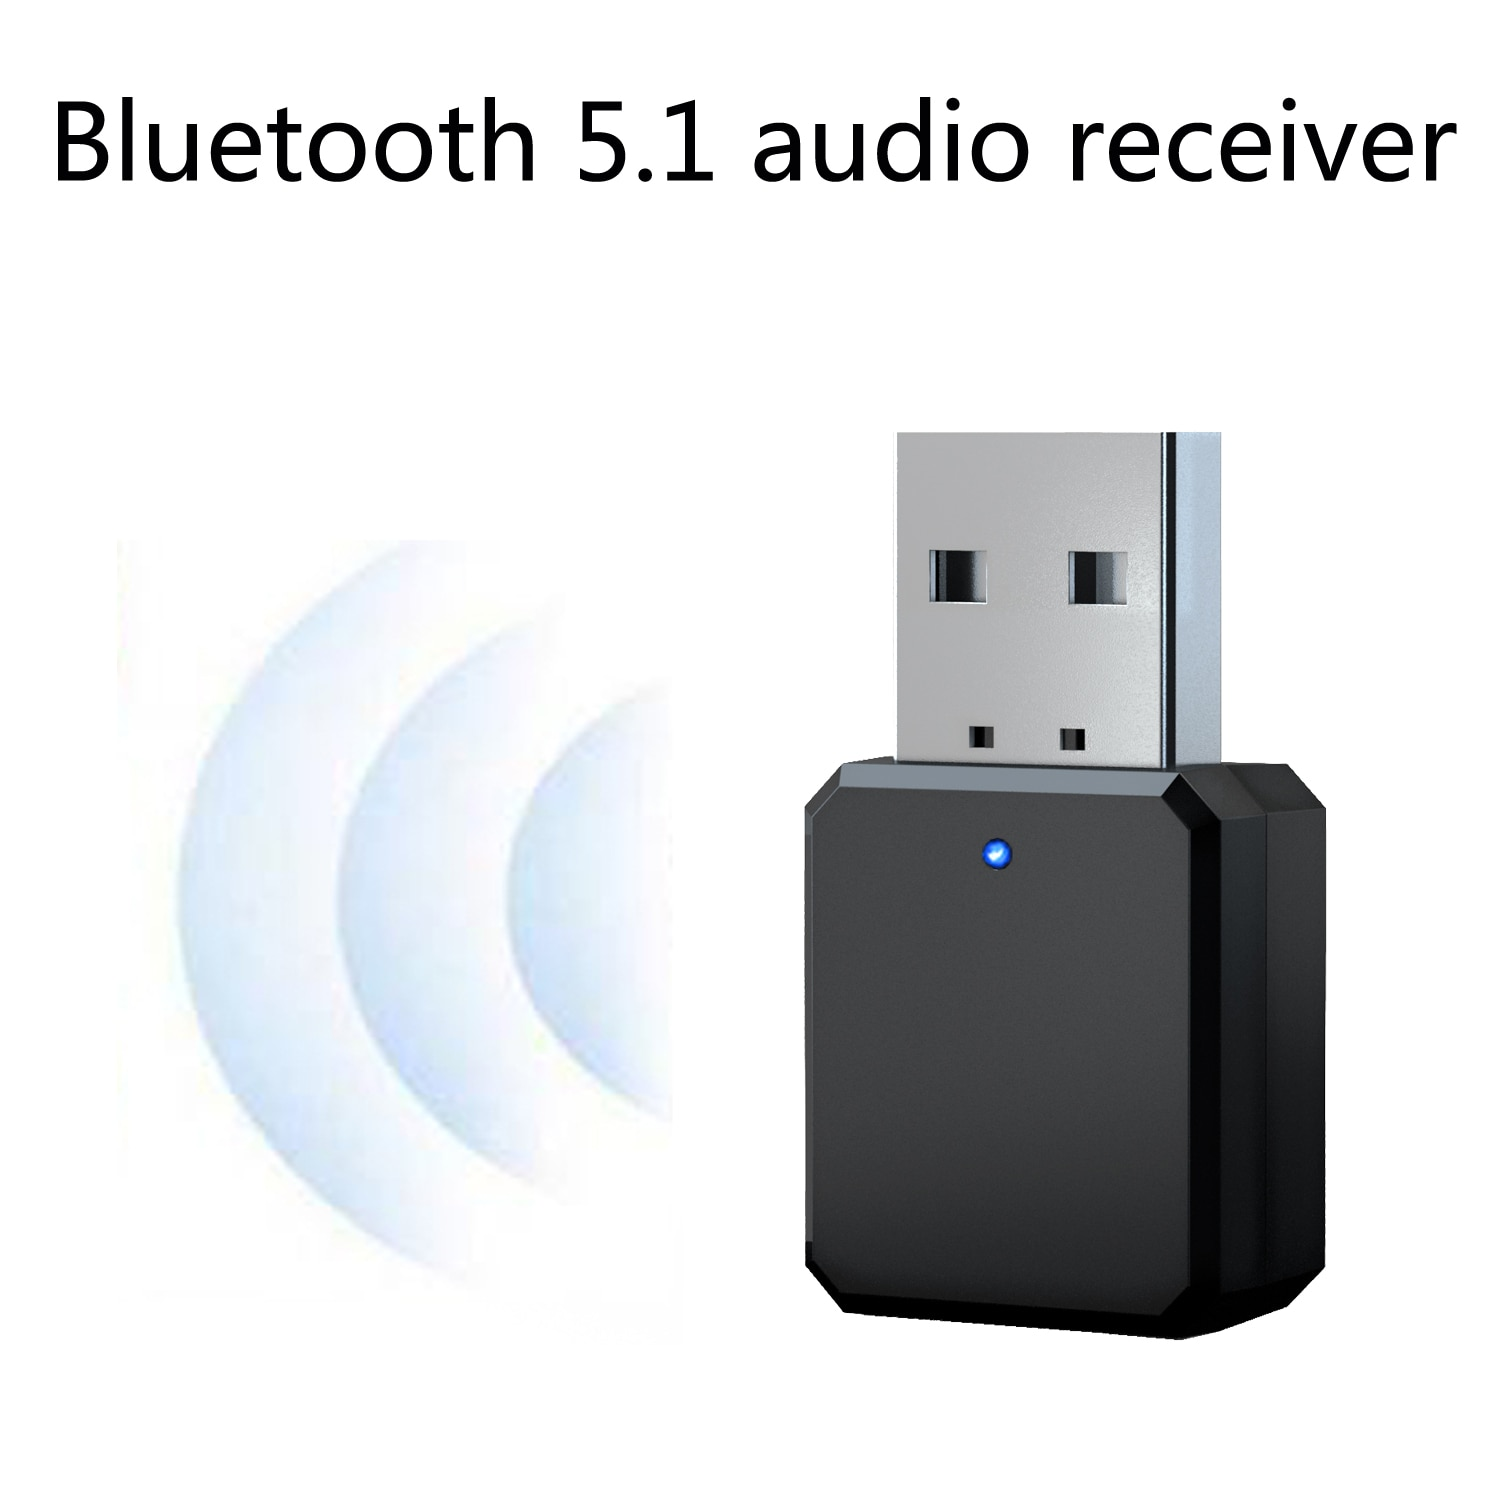 USB Wireless Bluetooth 5.1 Audio Receiver Adapter Music Speakers Hands-free Calling 3.5mm AUX Car Stereo Bluetooth 5.0 Adapter